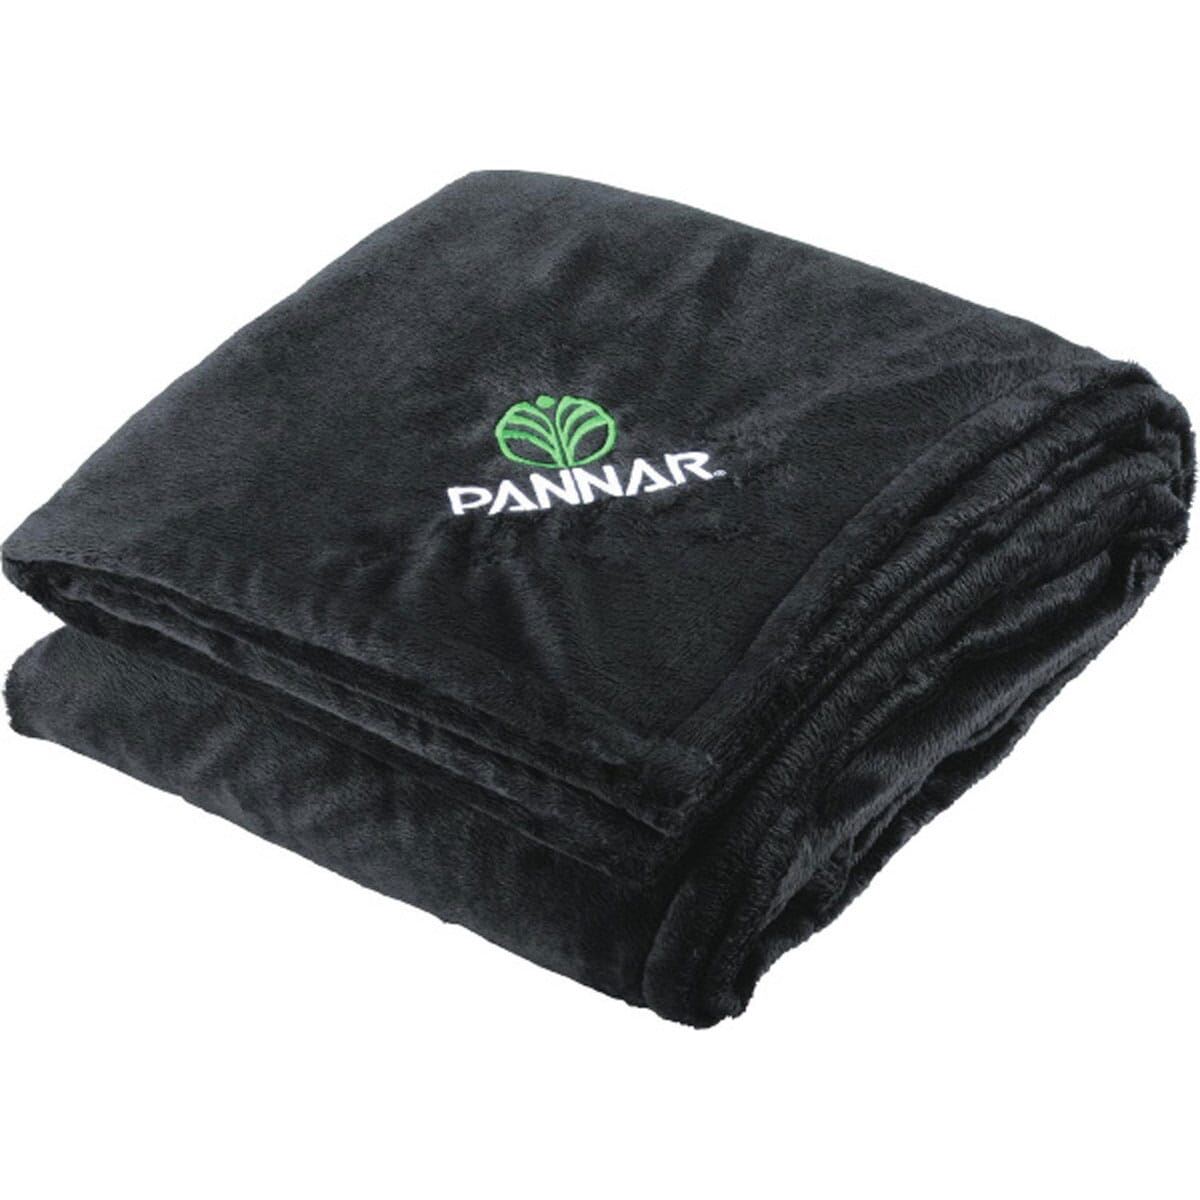 Sherpa throw blanket with embroidered logo